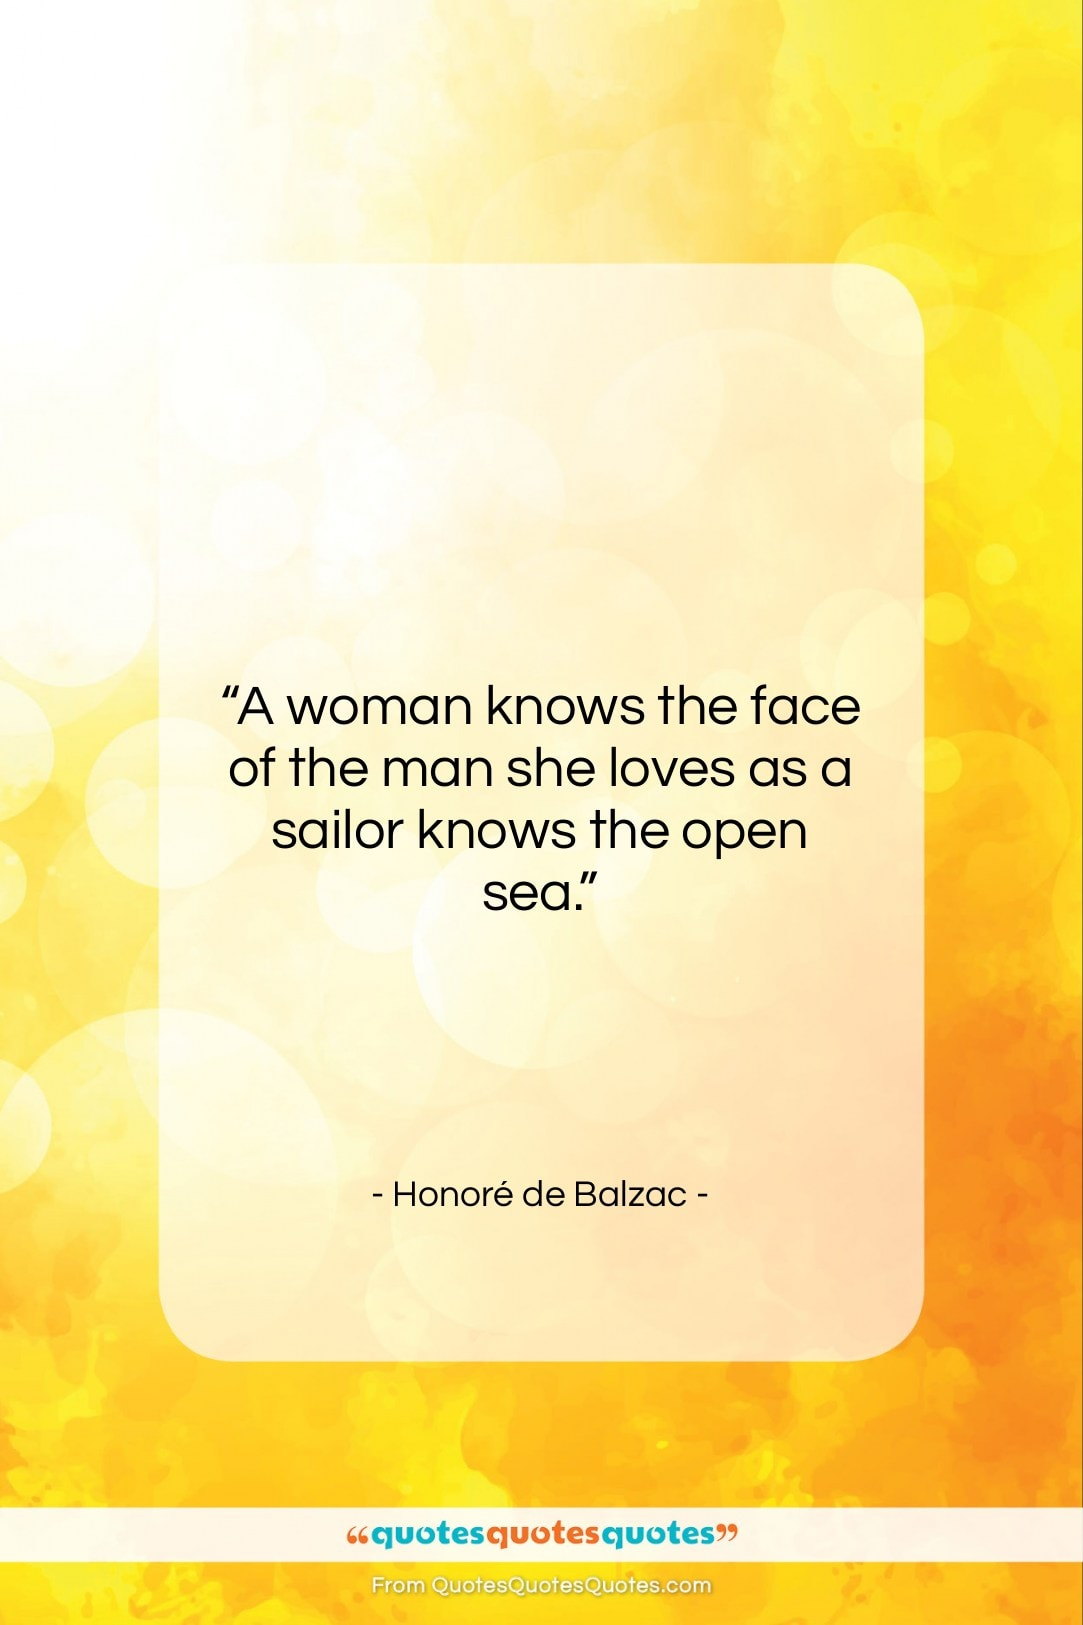 """Honoré de Balzac quote: """"A woman knows the face of the…""""- at QuotesQuotesQuotes.com"""